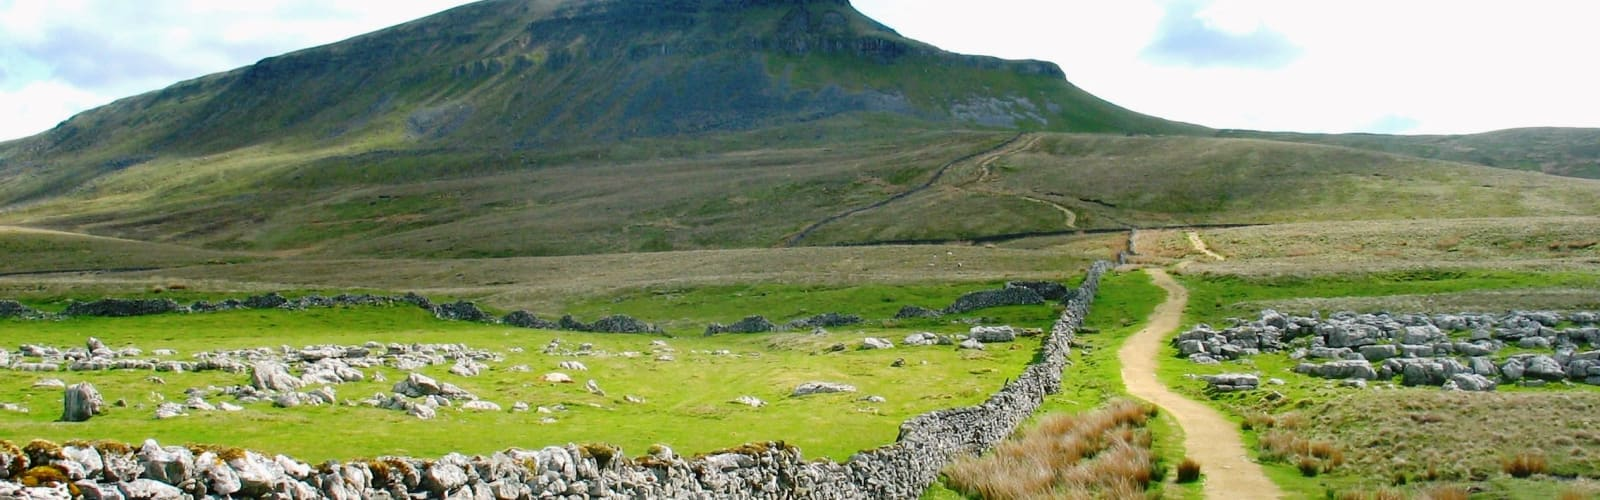 View of The Yorkshhire Dales